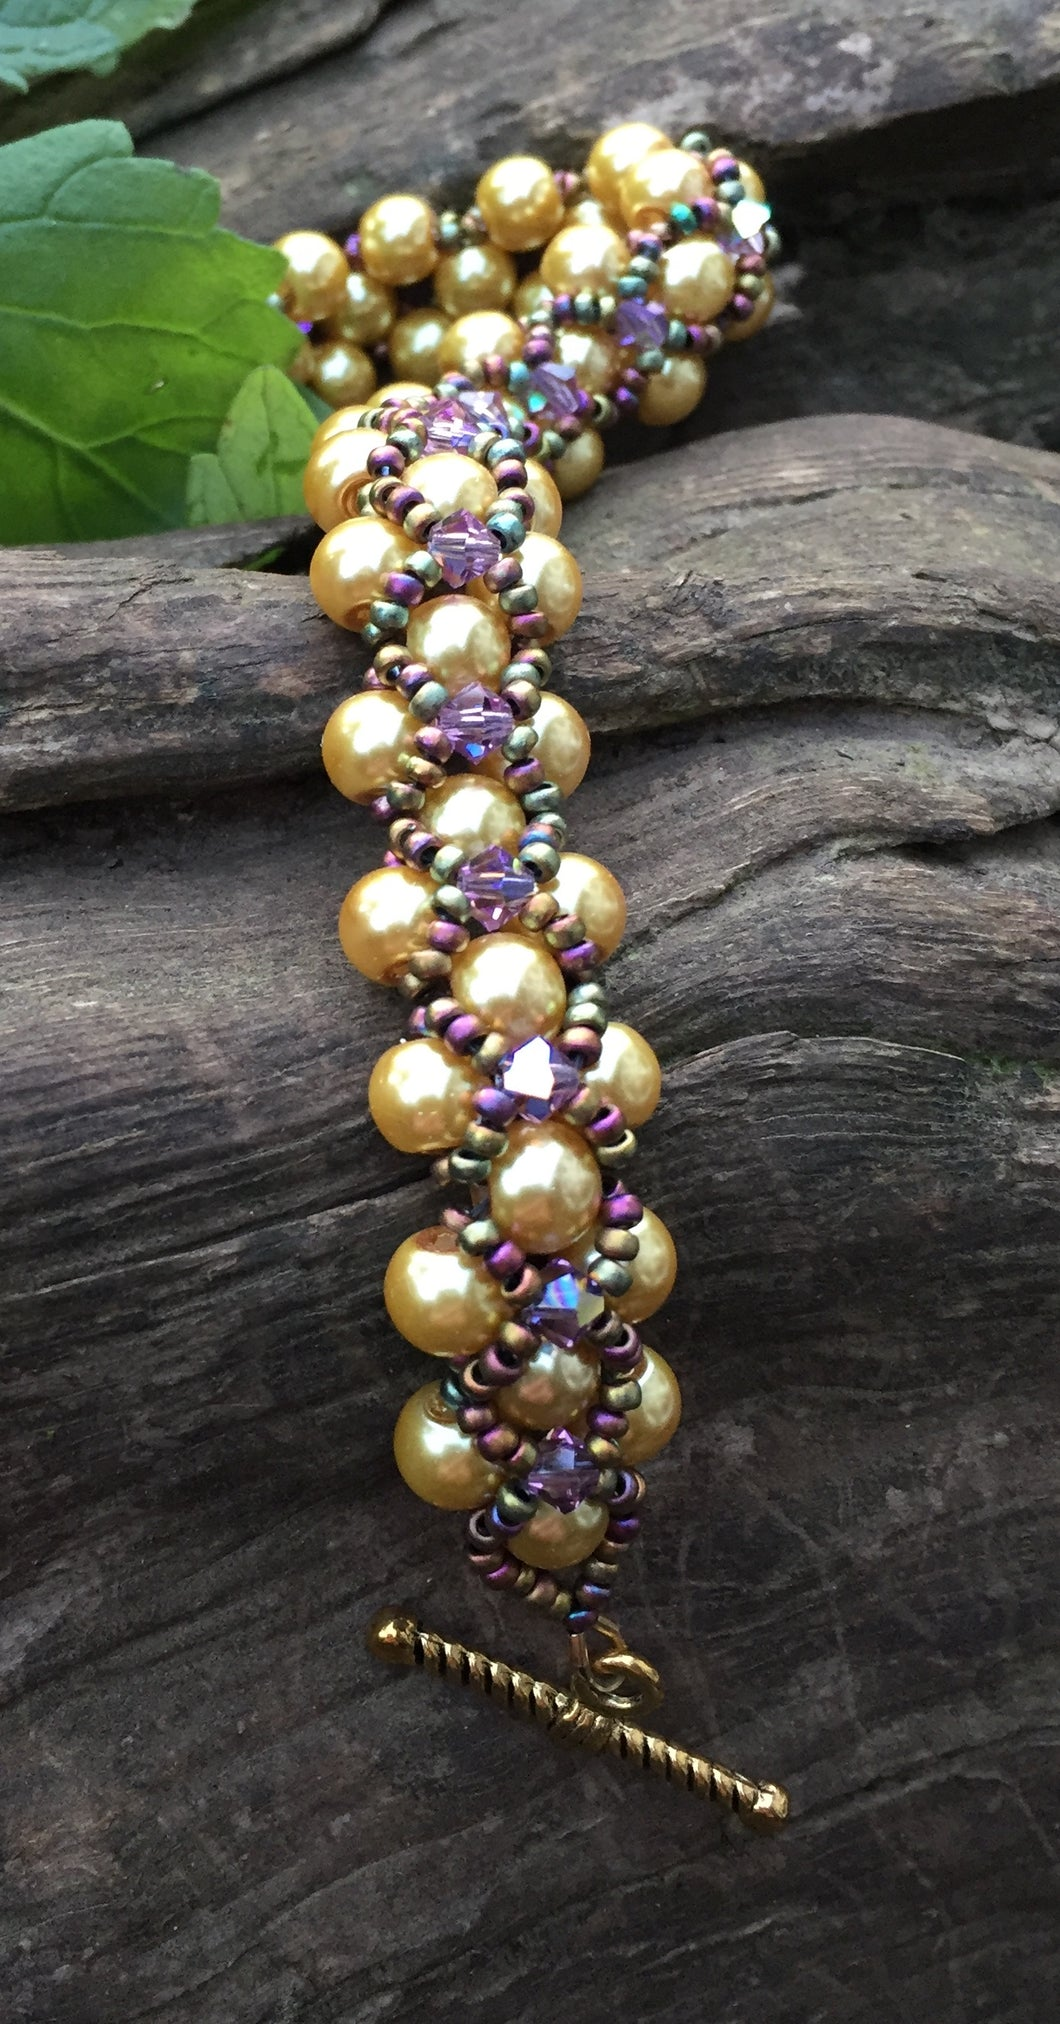 This Golden glass pearl and Amethyst bicone Swarovski crystal bracelet is netted together with Matte Iris seed beads and measures 7 7/8